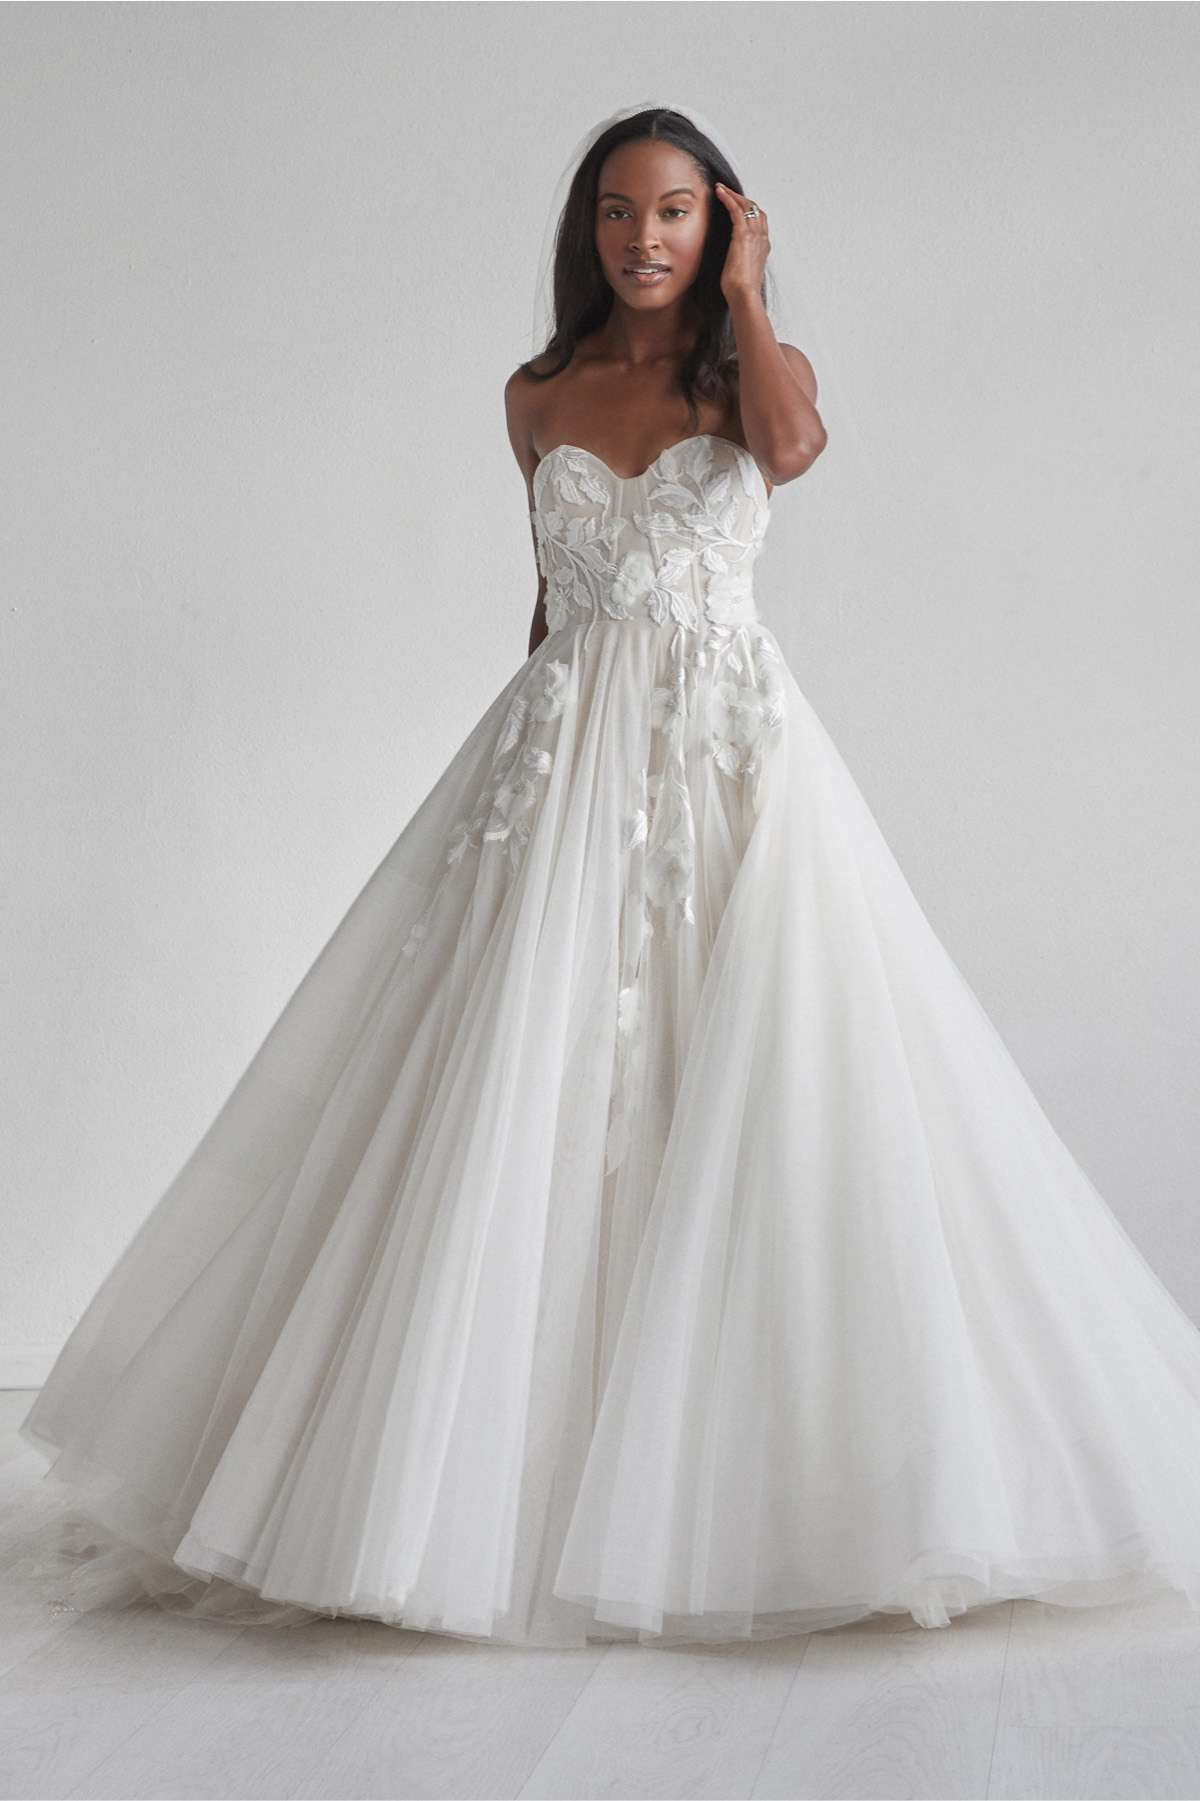 Model in strapless ballgown with floral embellishments and a tulle skirt